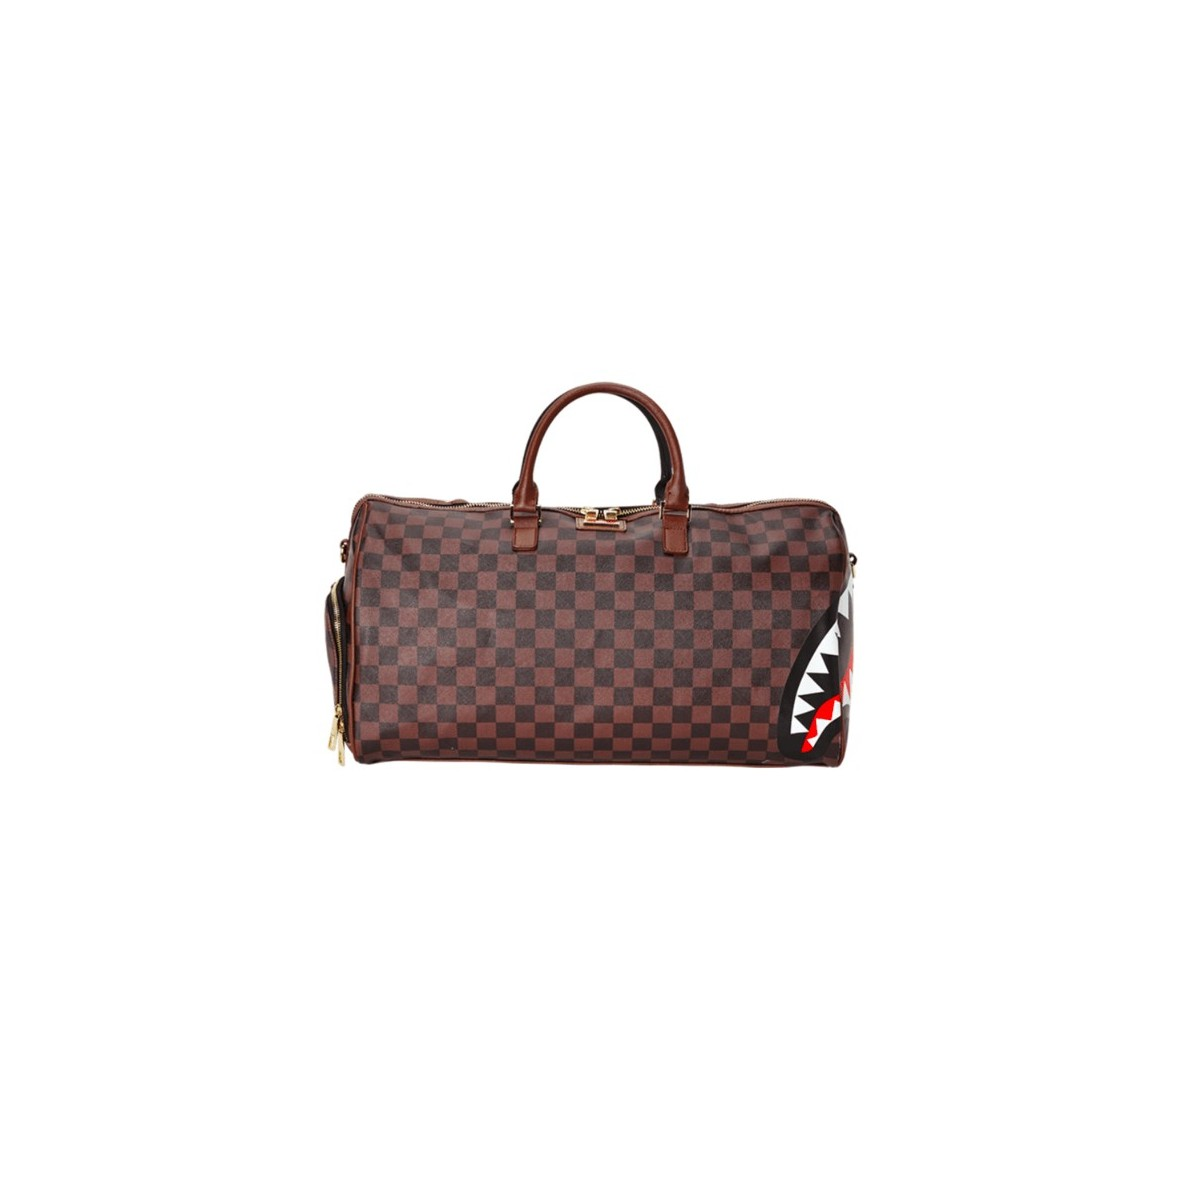 Borsa - Paris vs florence duffle